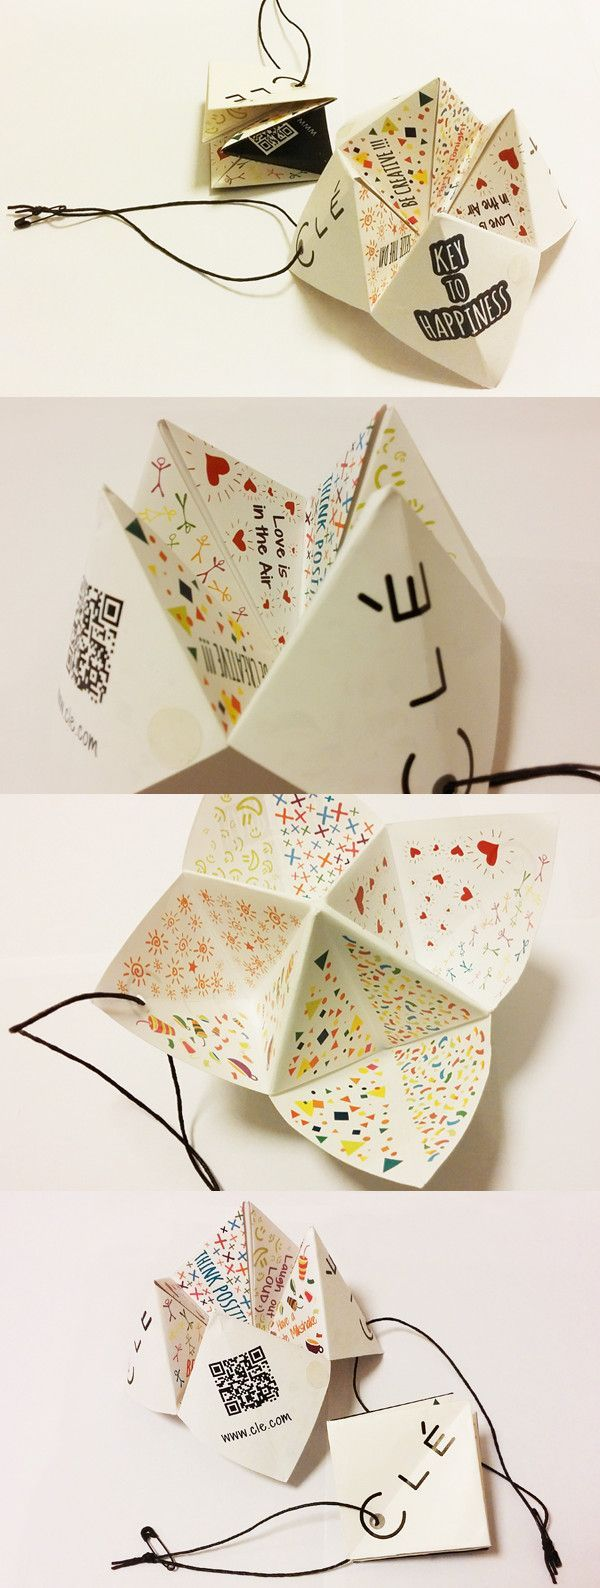 Creative Designs and Shapes of Hang Tags for Inspiration | Xia Feng | LinkedIn: